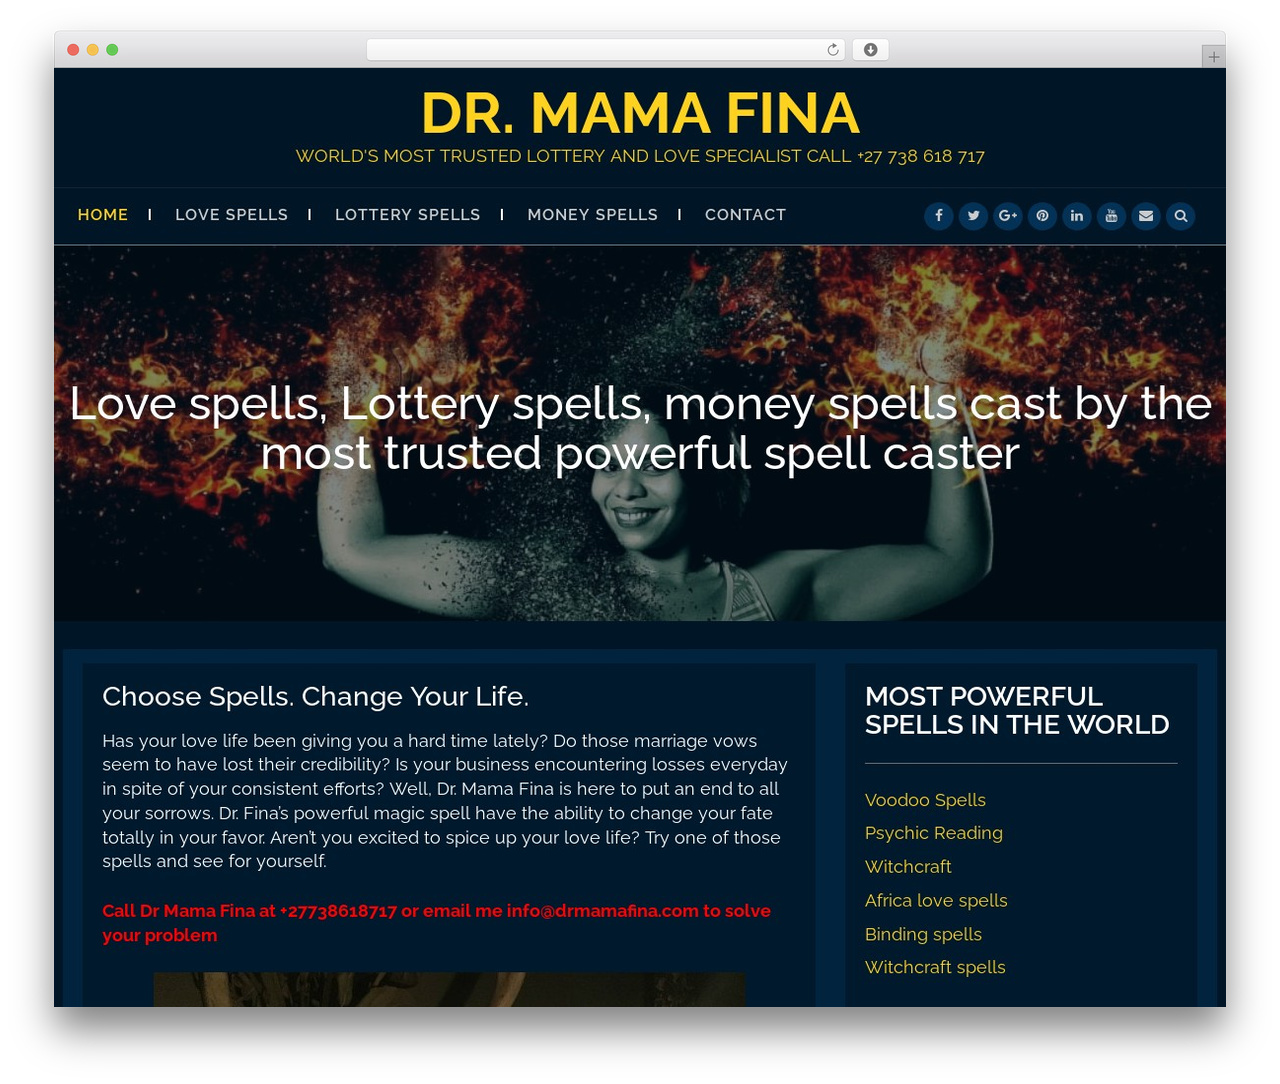 Big Blue free WP theme by Hostmarks - drmamafina com